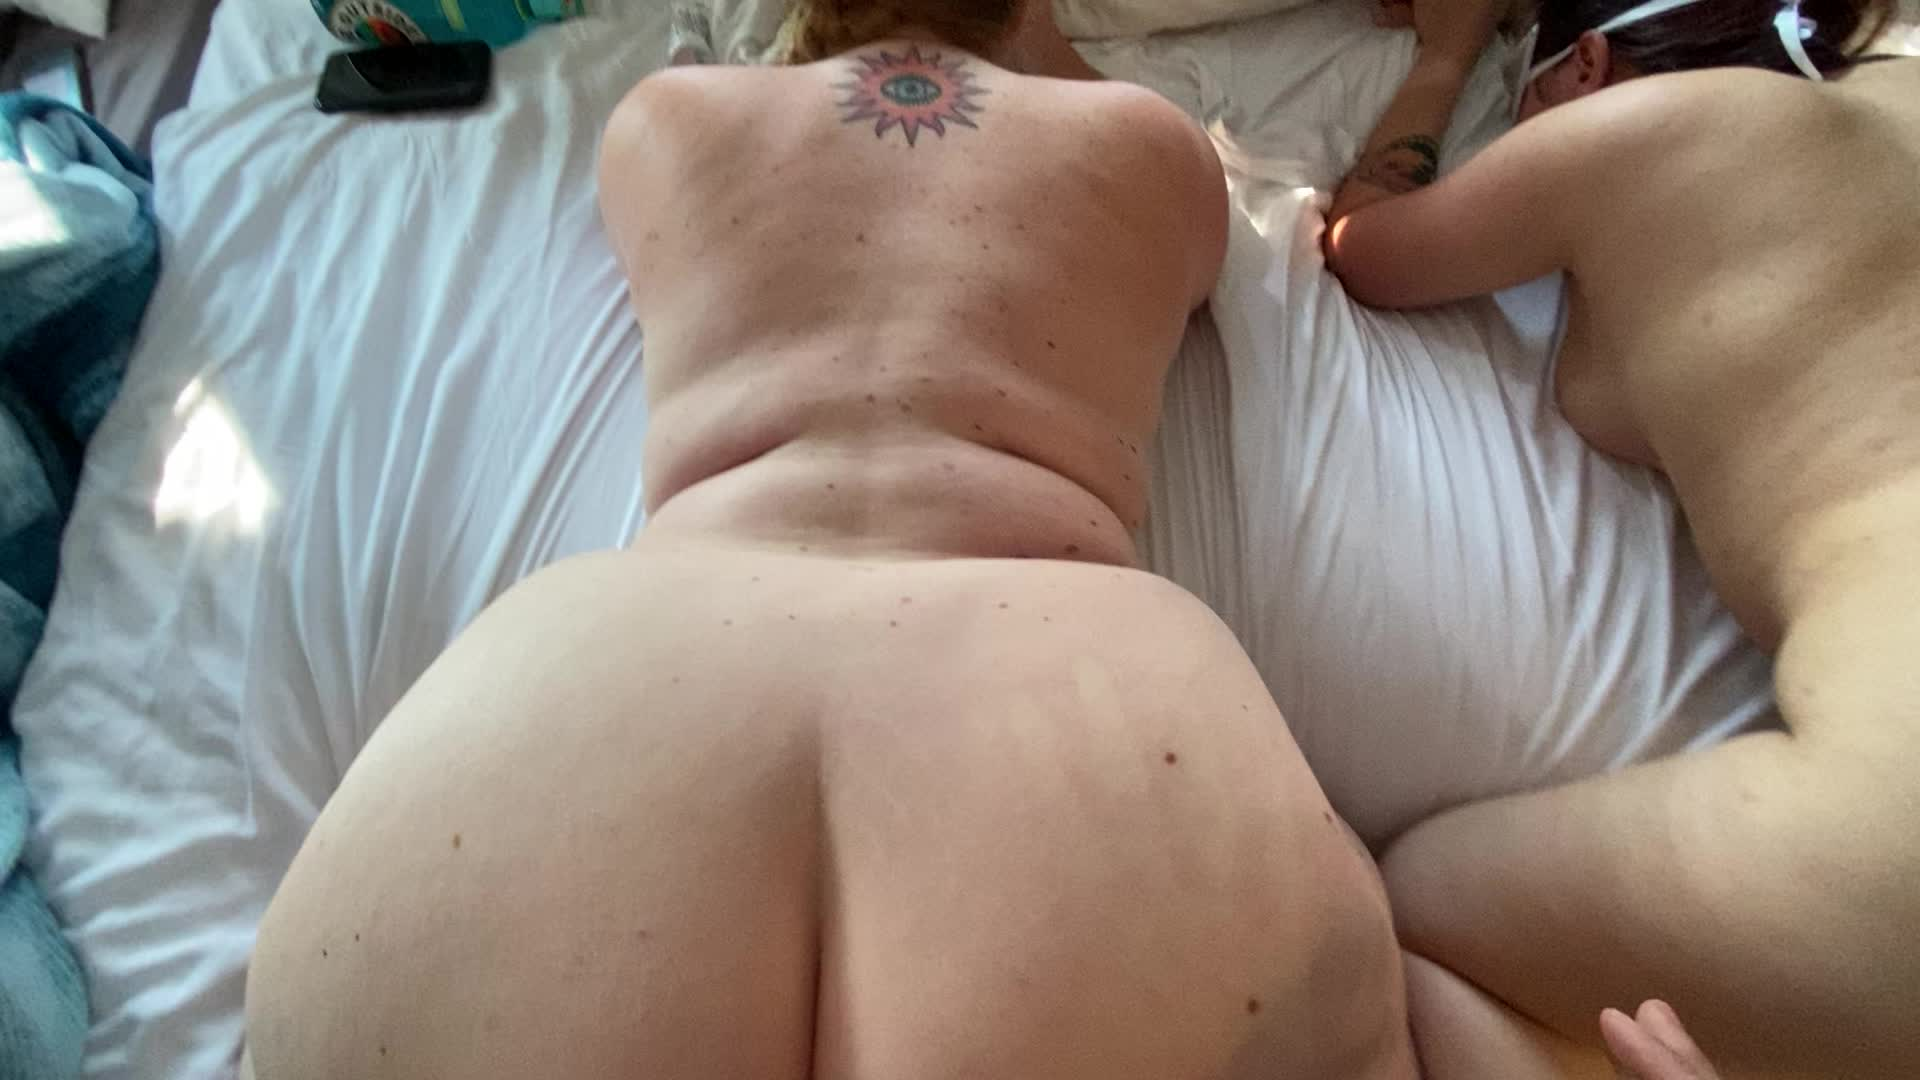 Fucking this thick booty while rubbing her friends pussy!